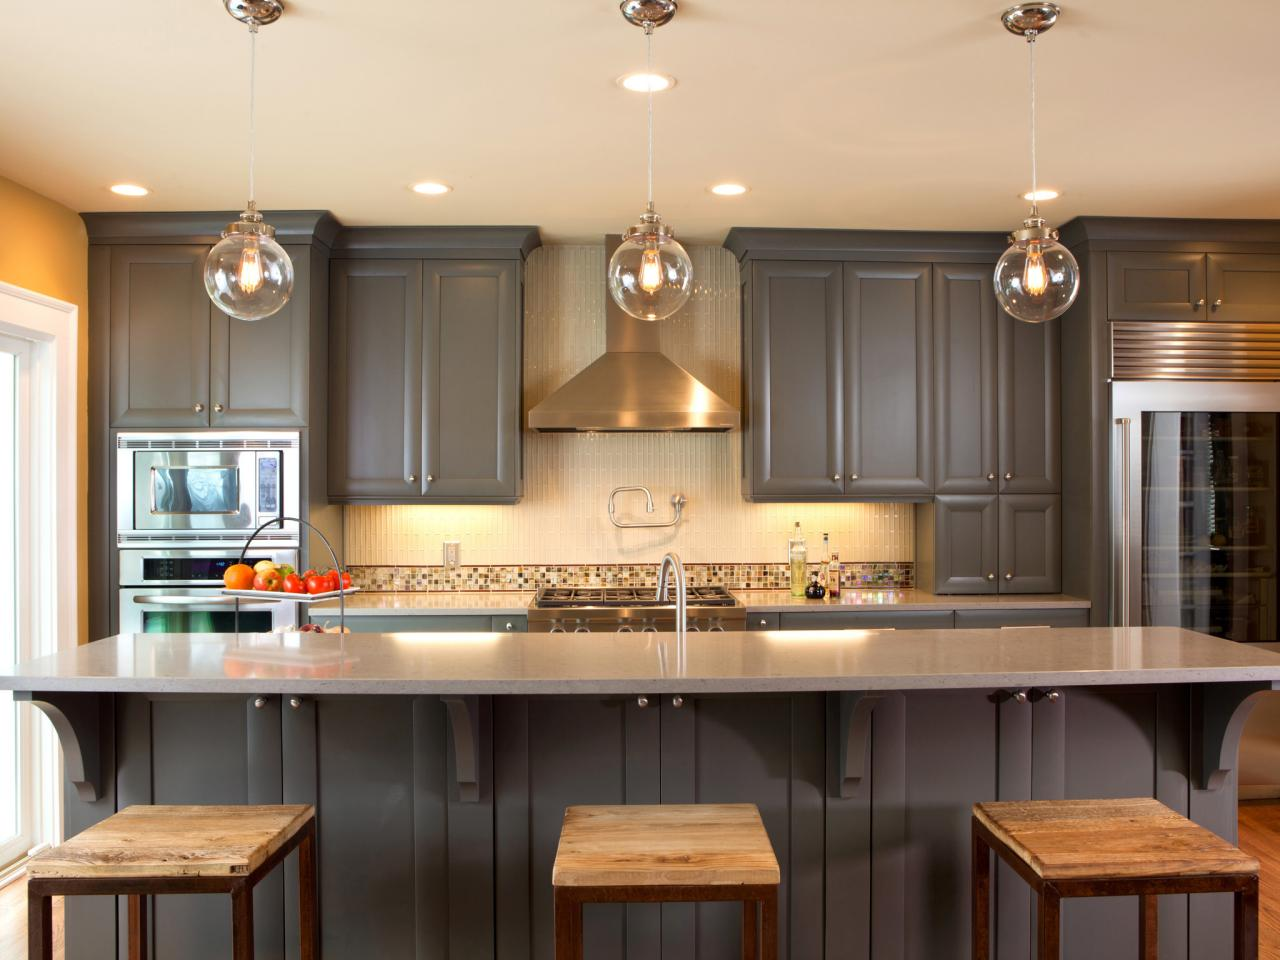 kitchen cupboard paint ideas ideas for painting kitchen cabinets AQRLMBD